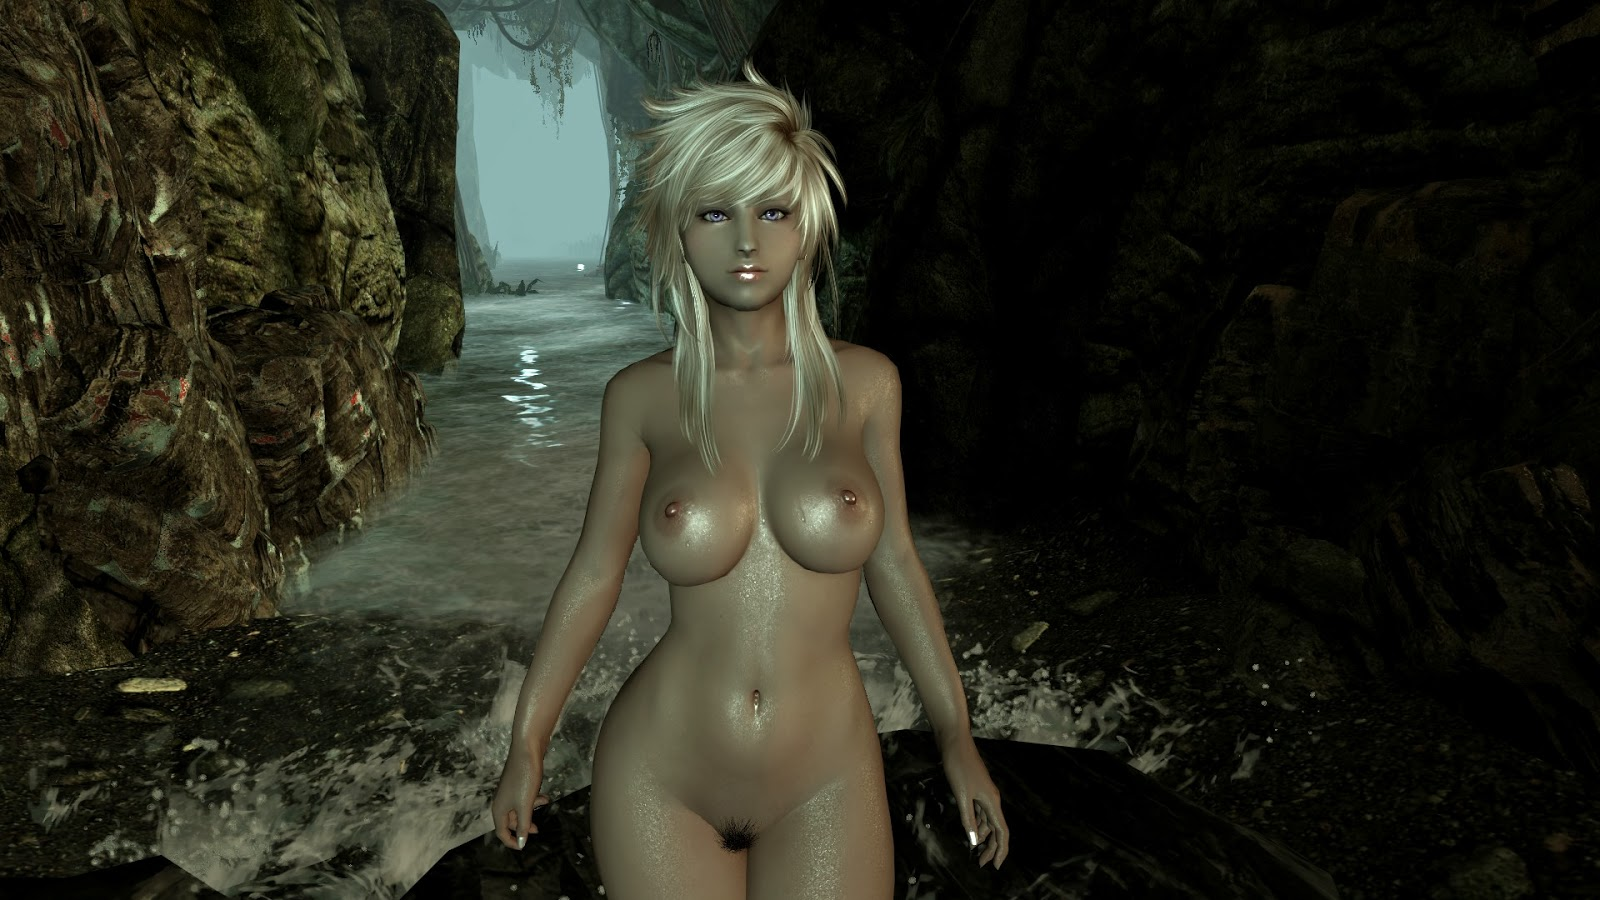 Skyrim female nudes porn pretty daughter